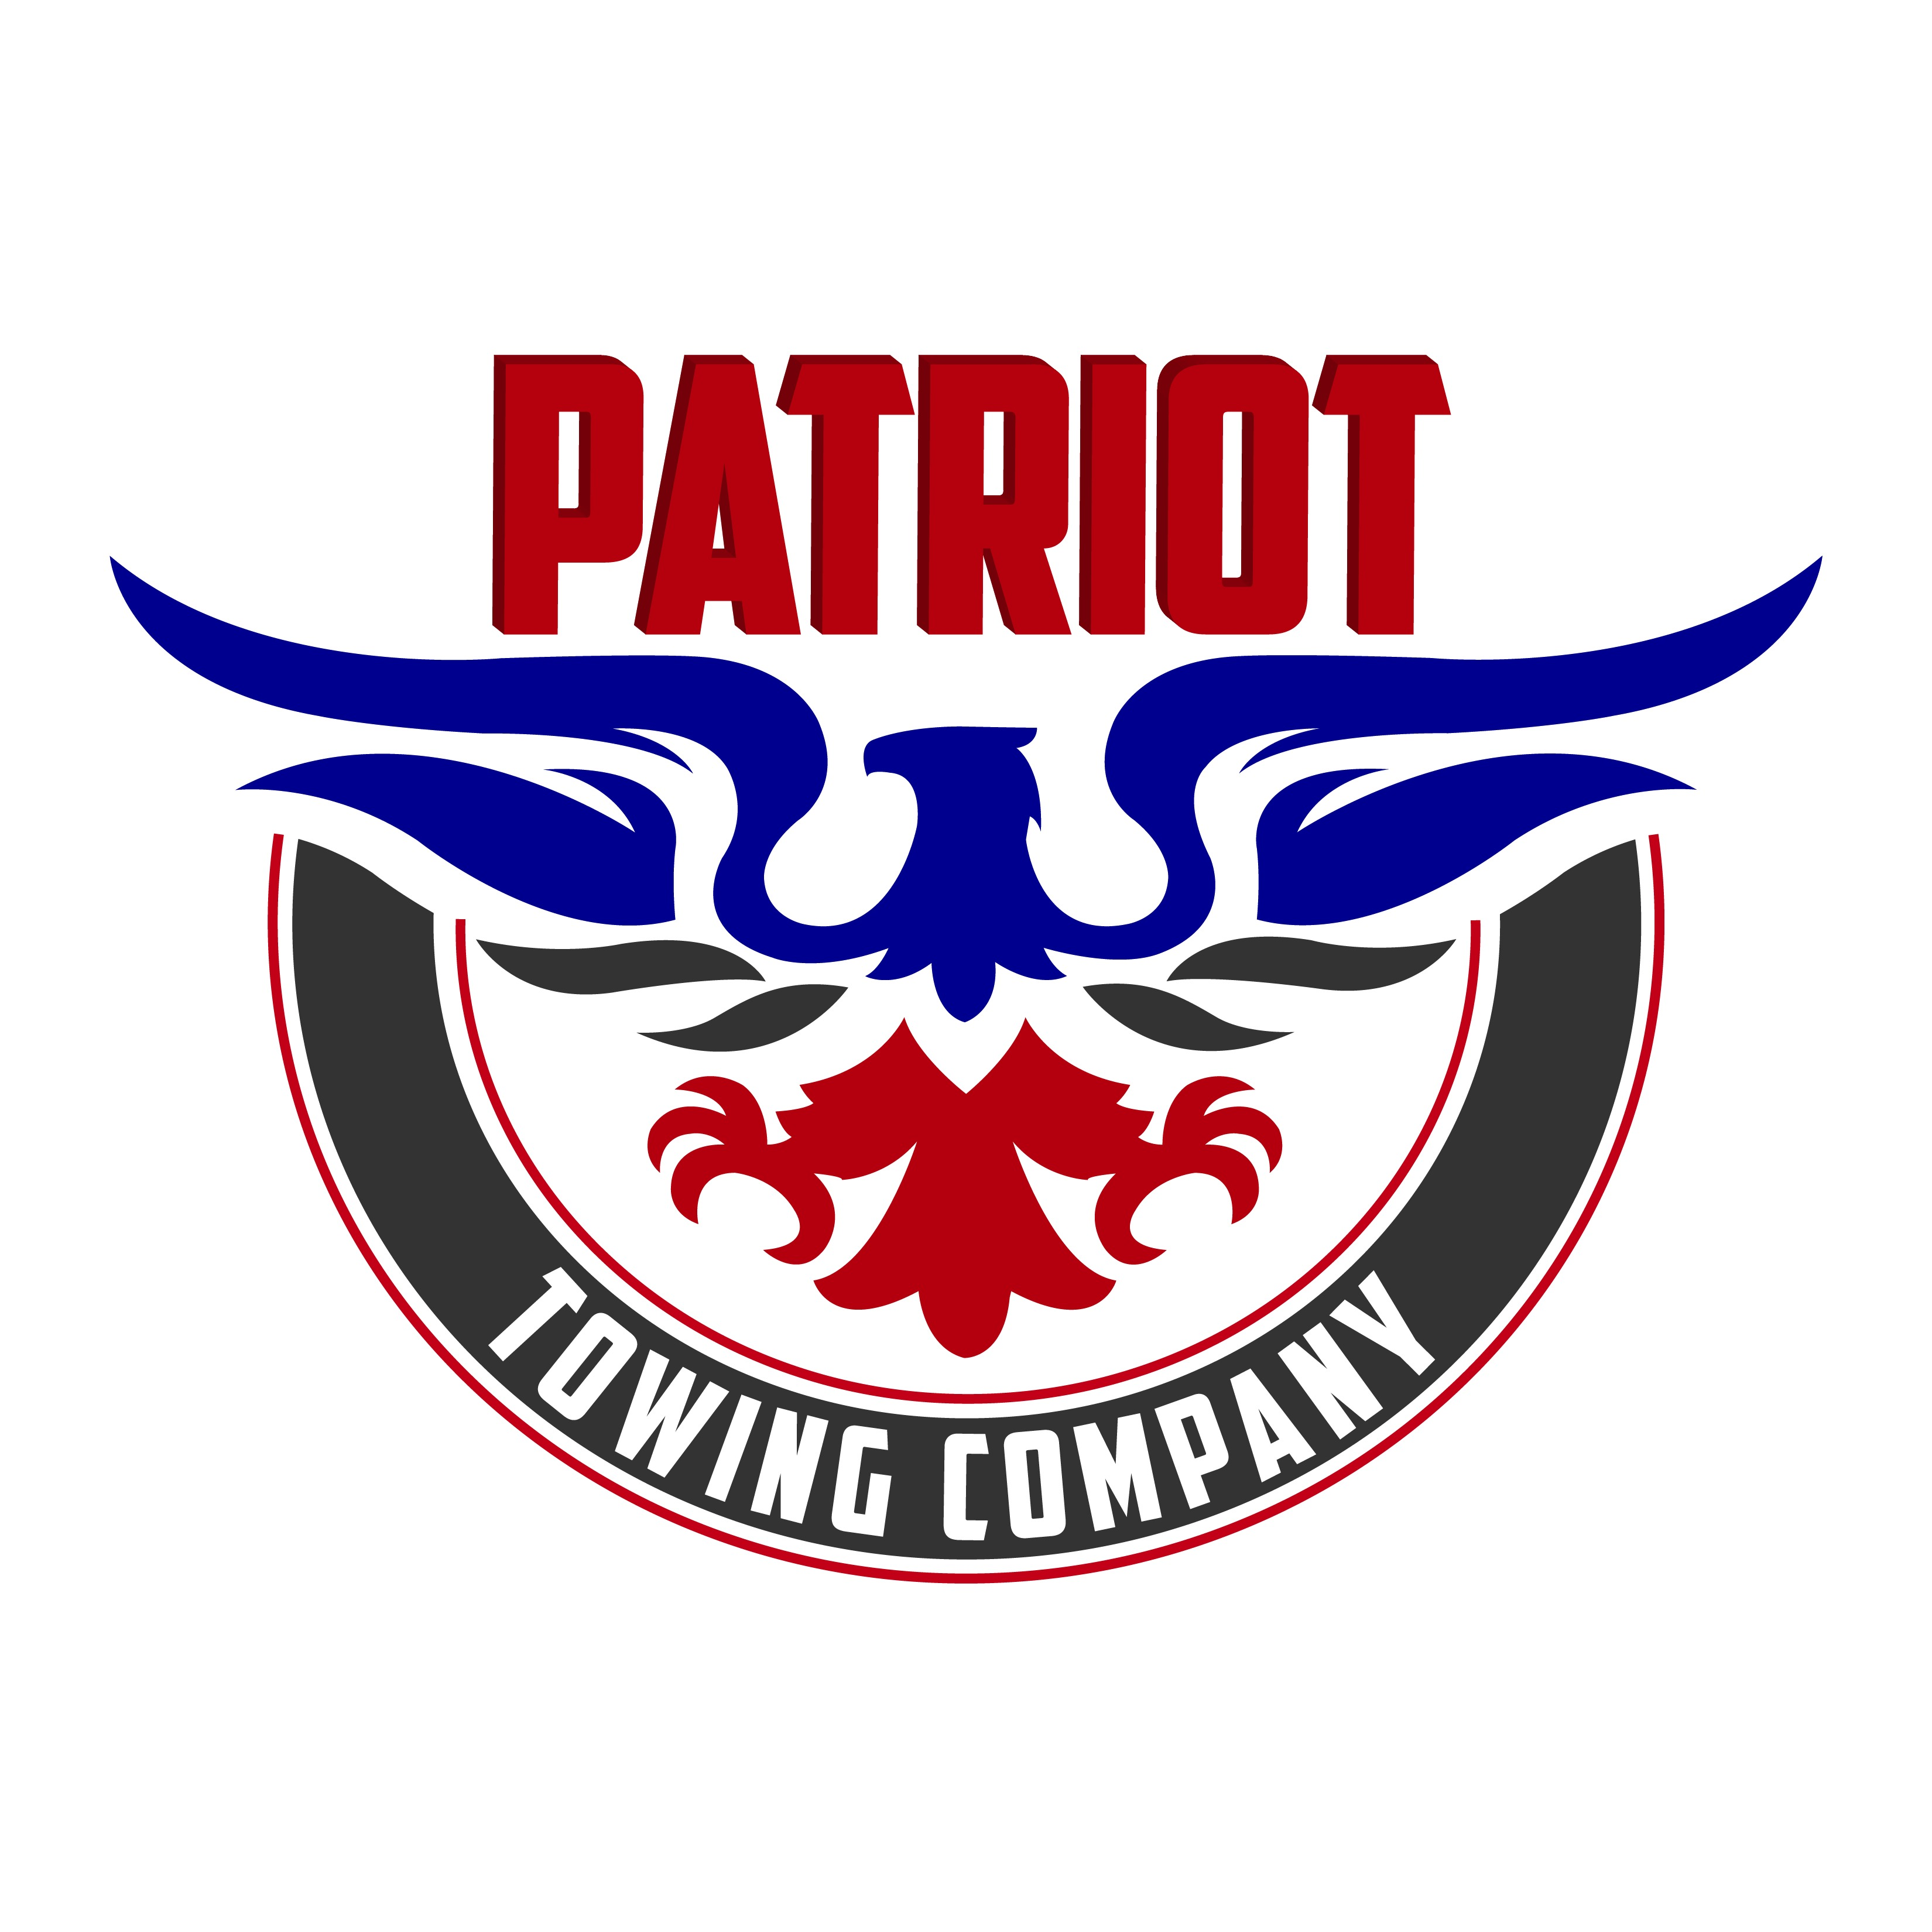 Patriot Towing Services of Woodstock